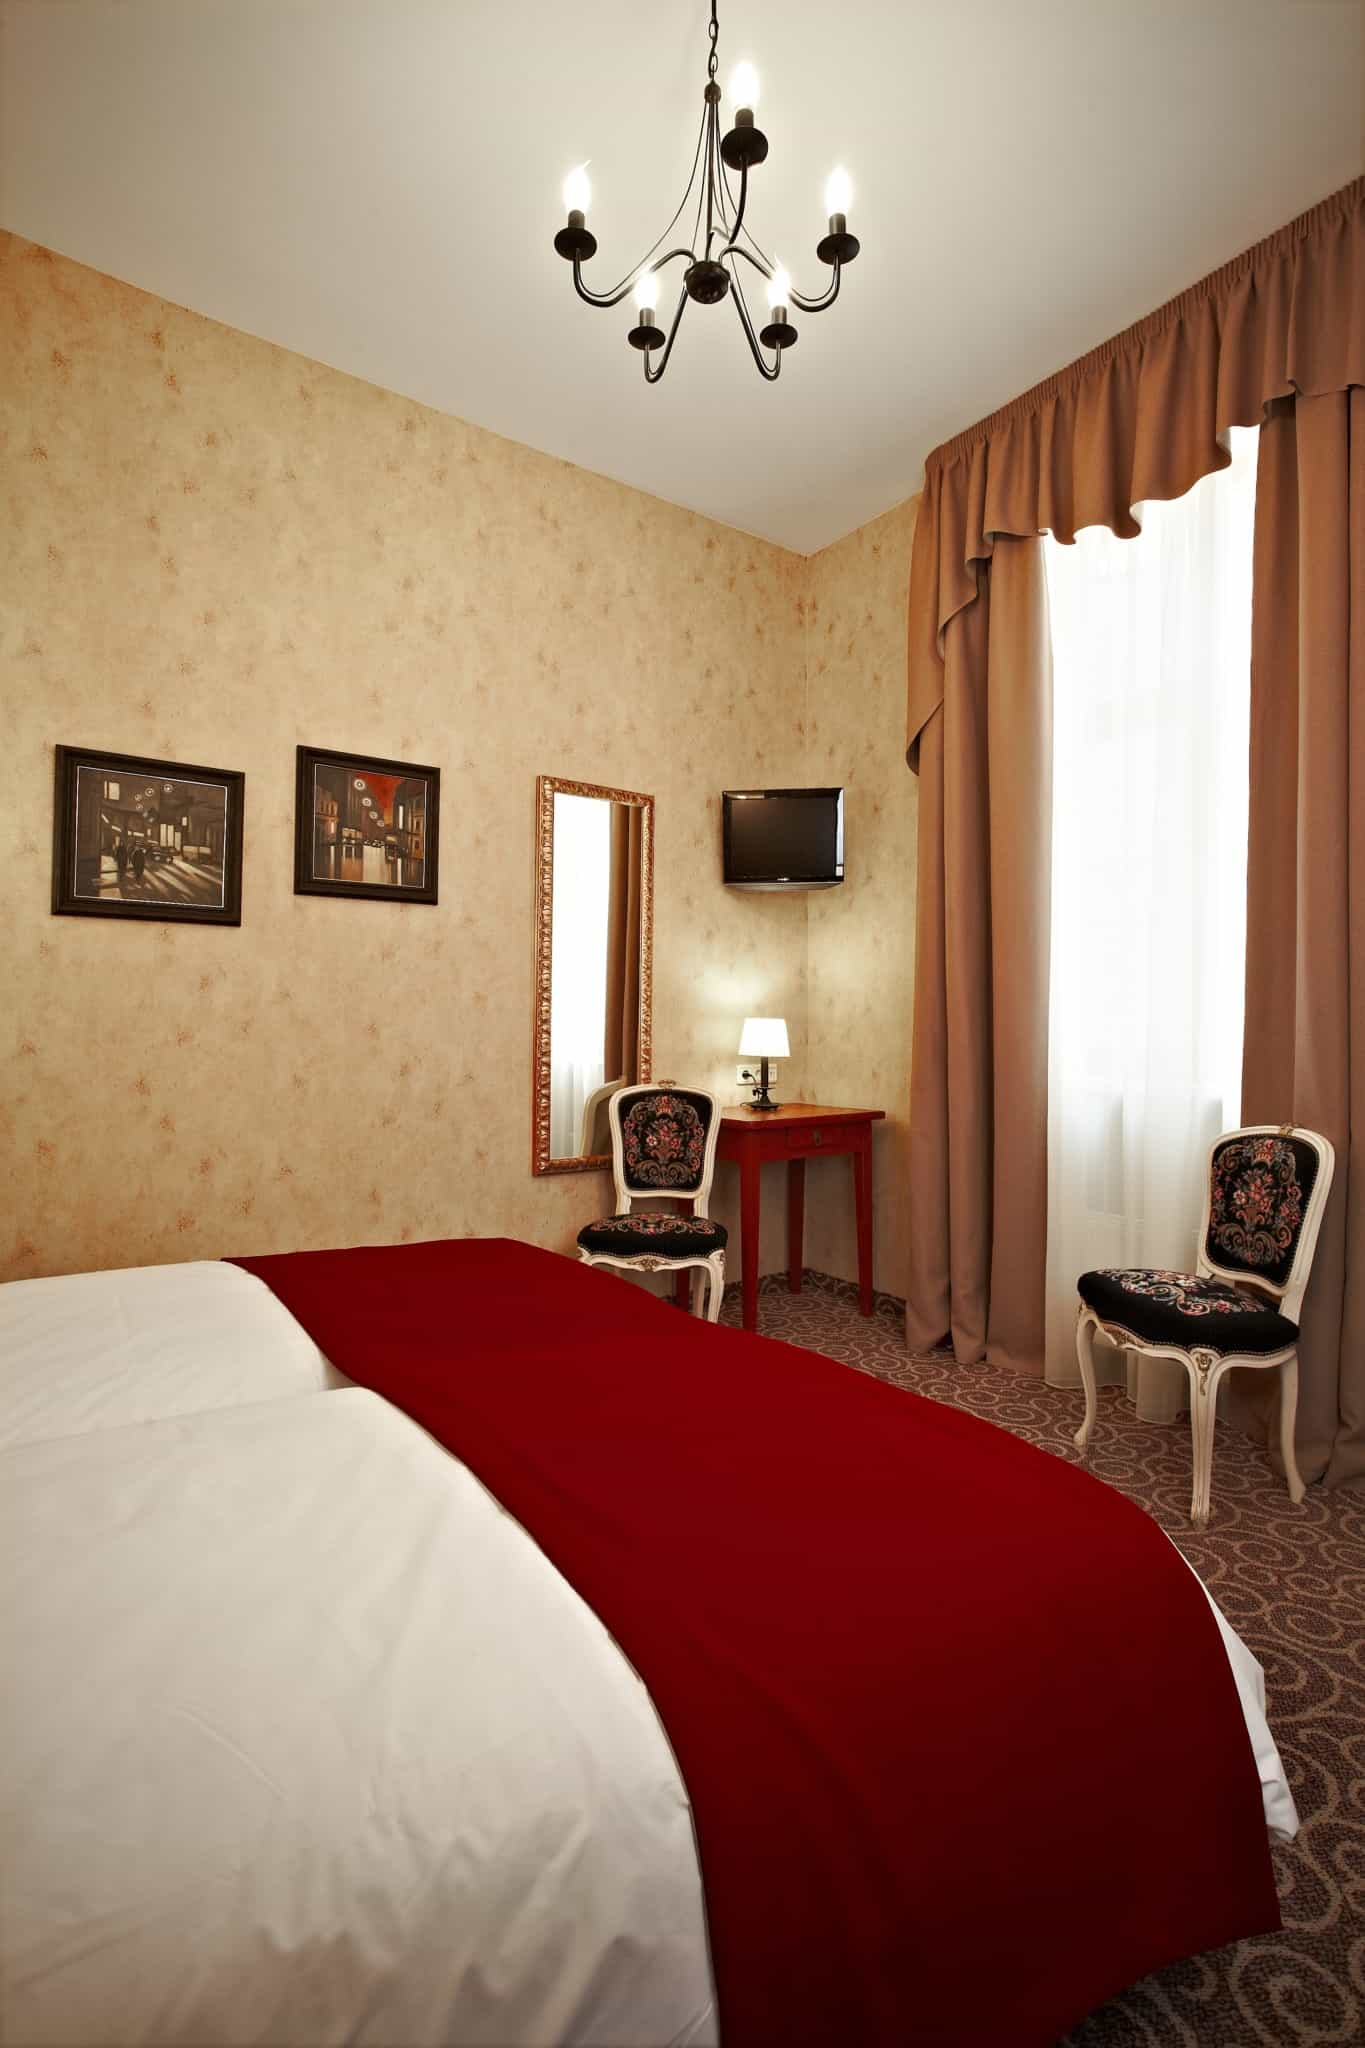 Twin Bed Hotel Room: Standard Double Room At Hotel Justus